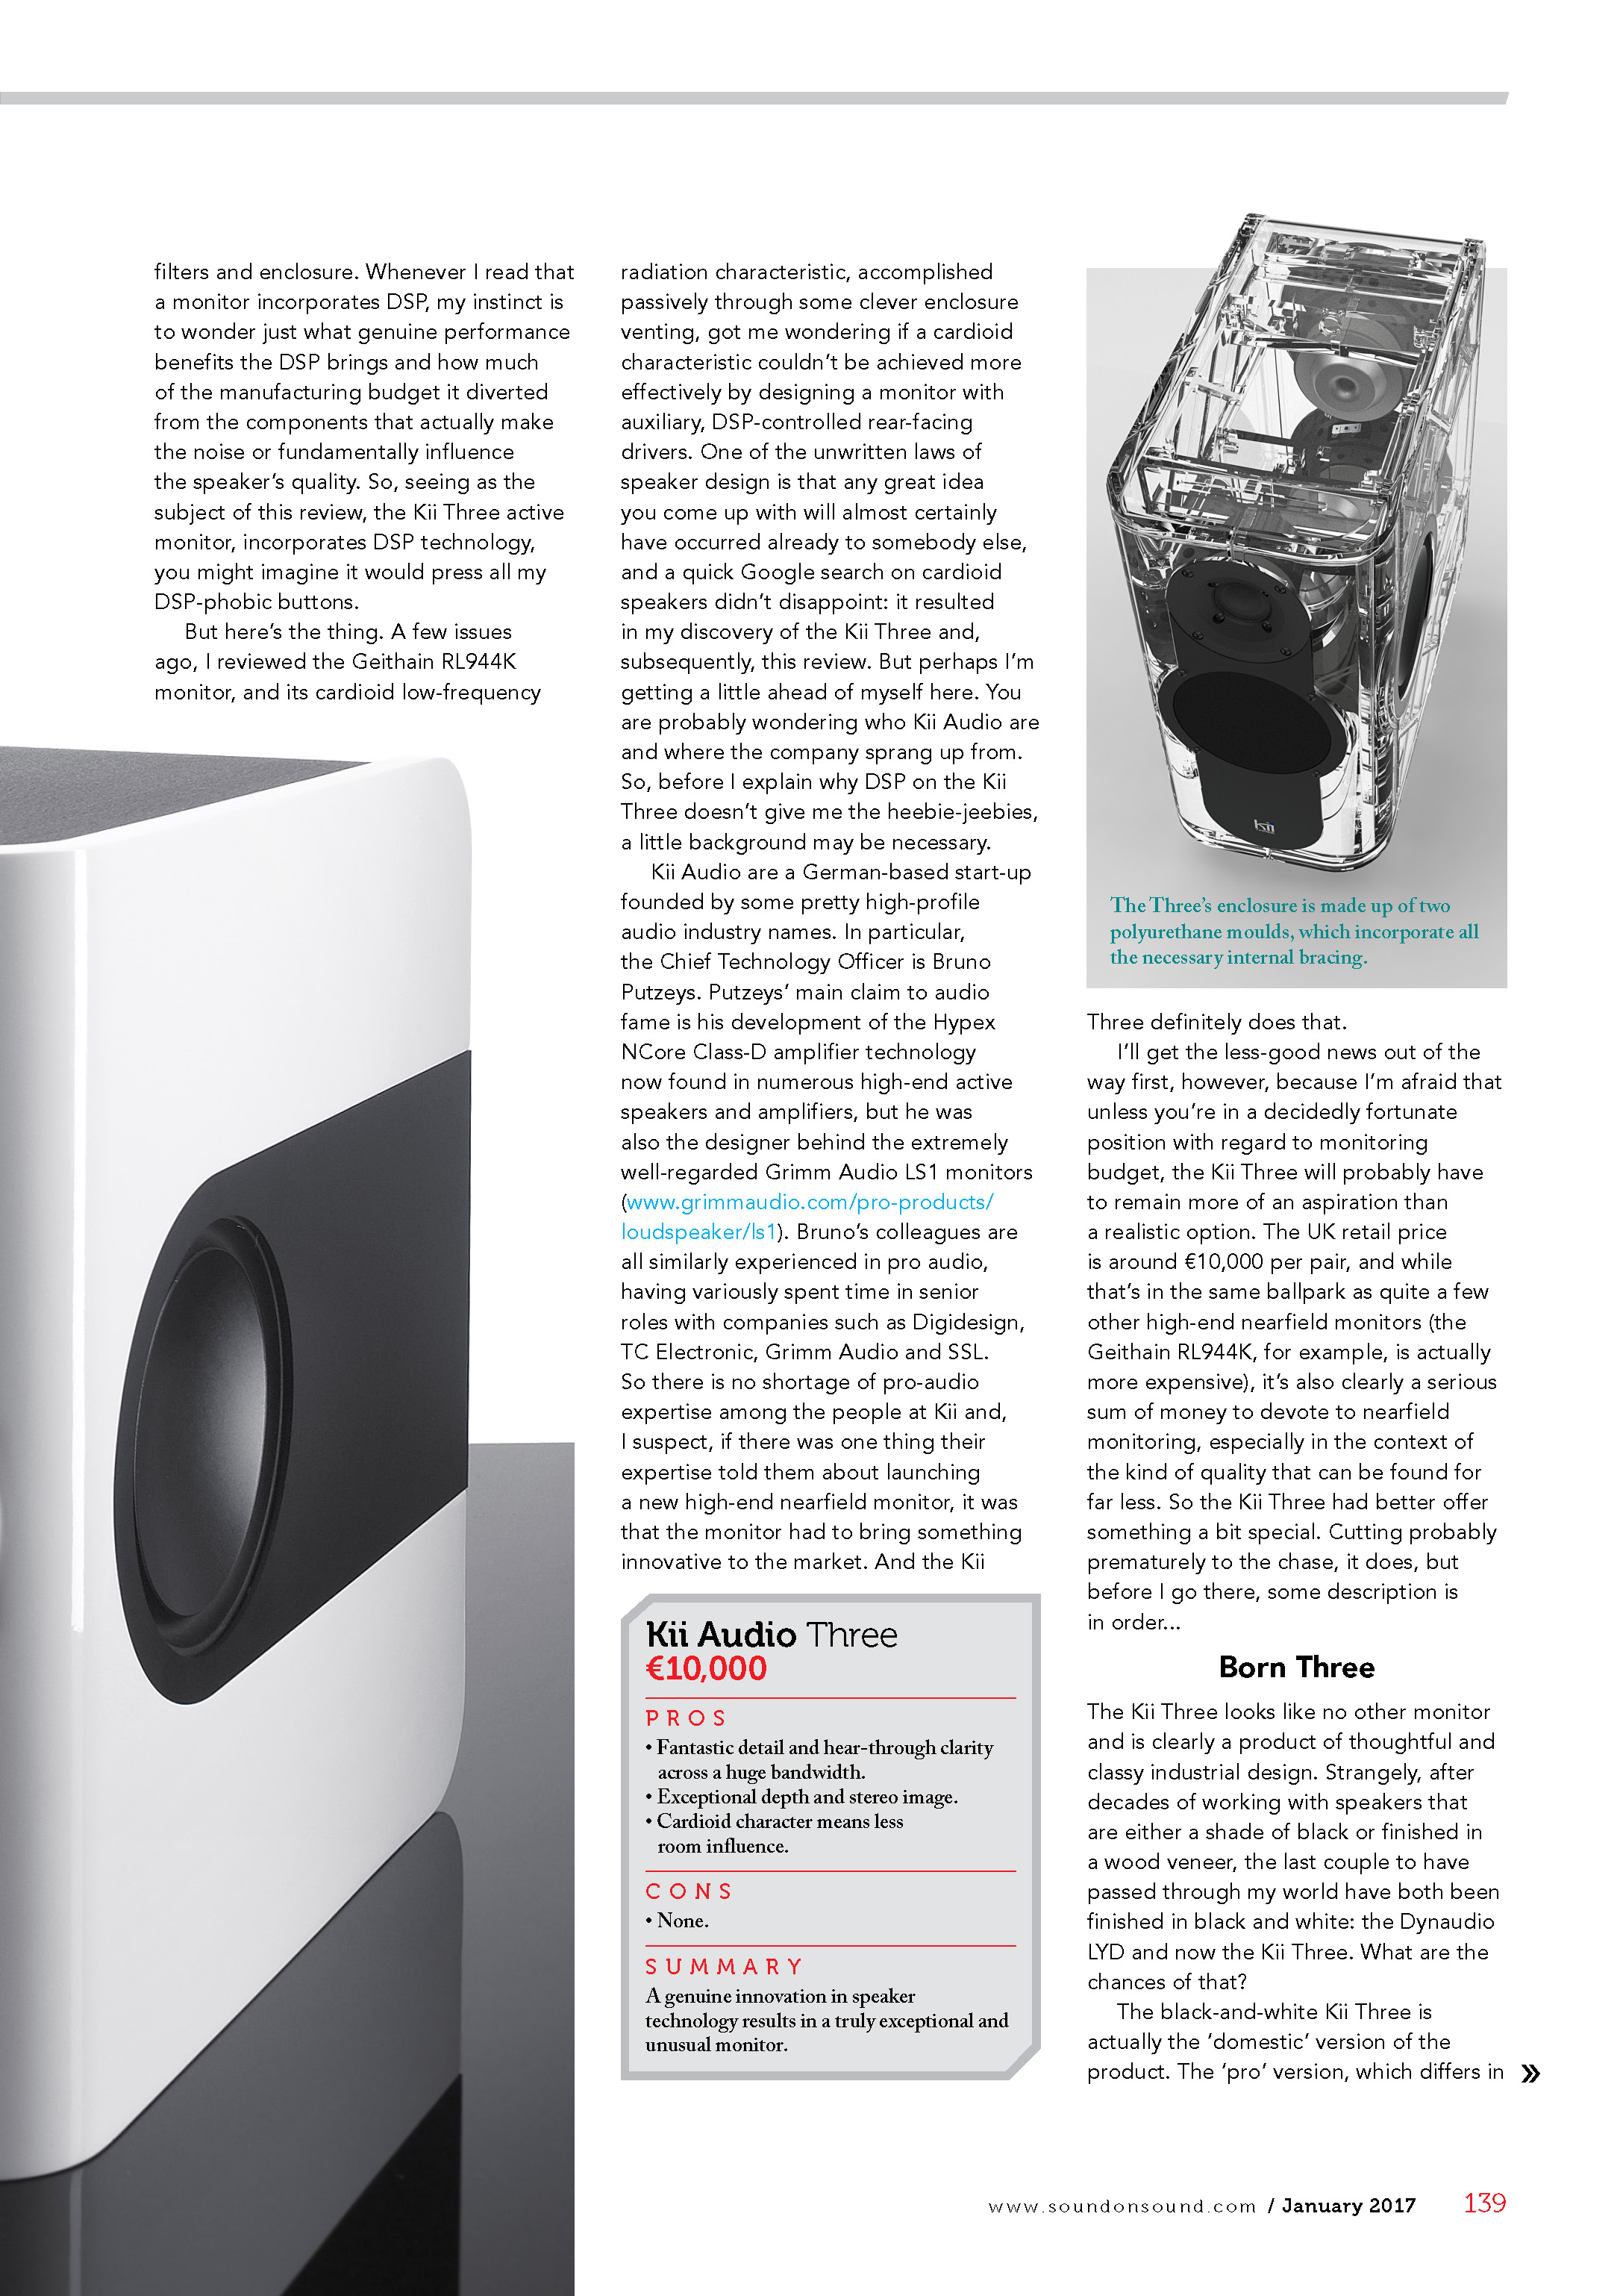 soundonsound012017kiithree_Page_2.jpg